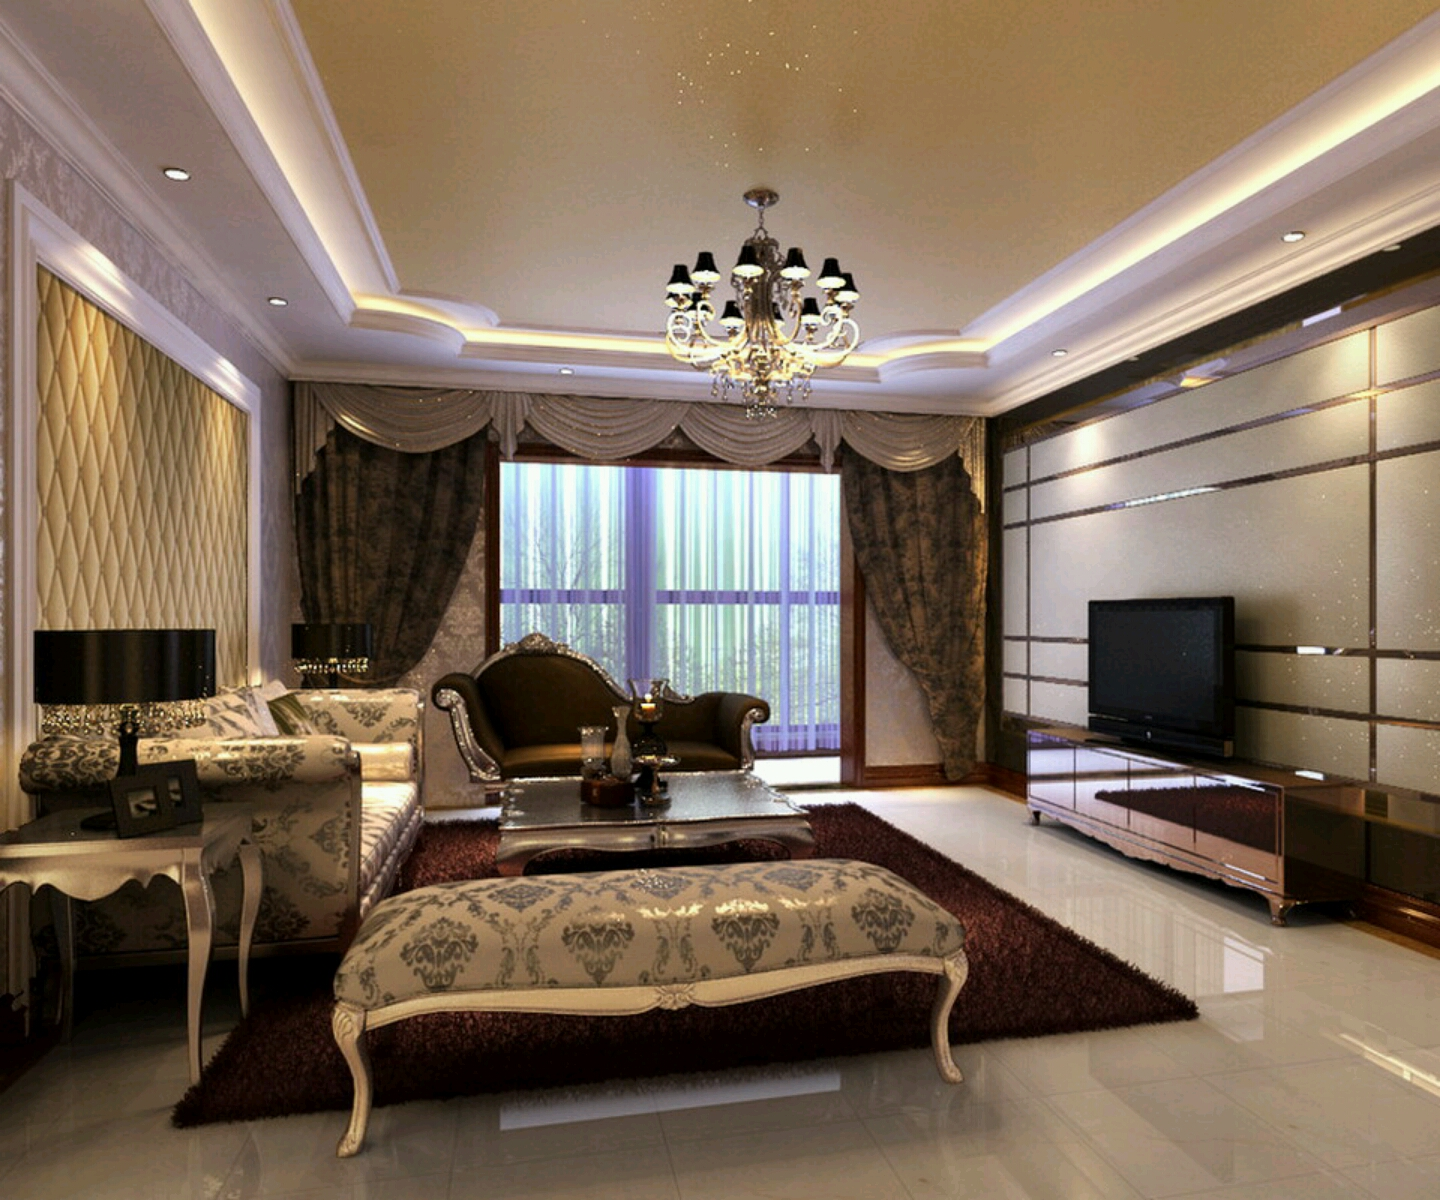 Interior decorating ideas living rooms dream house for Home interior drawing room